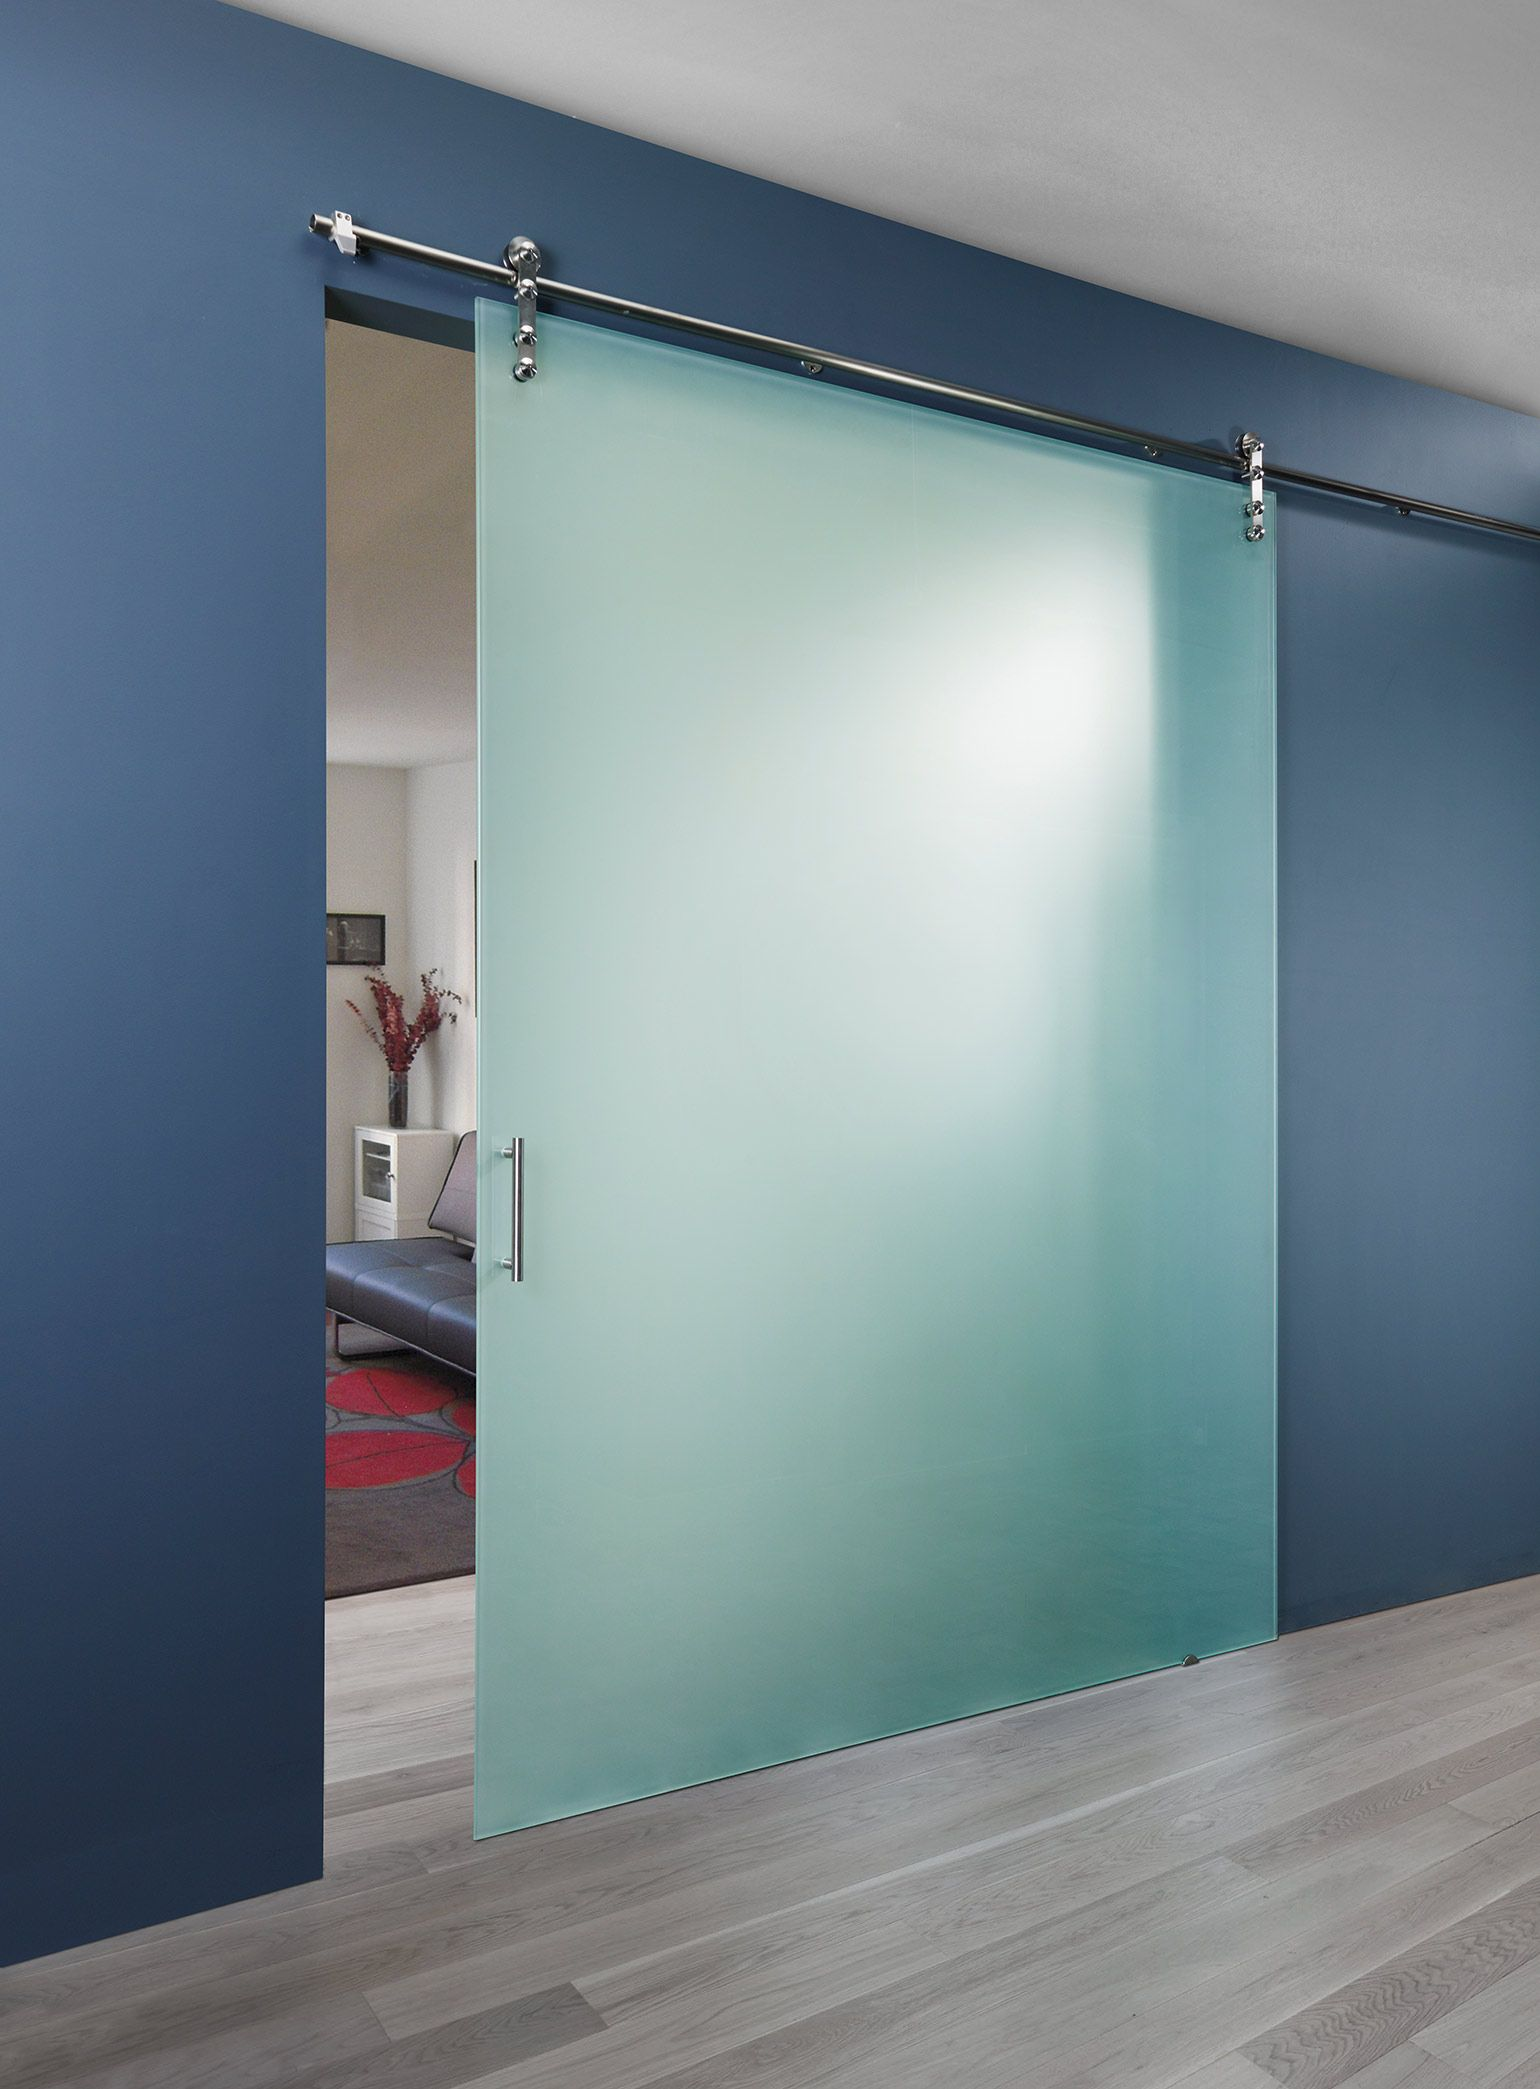 glass door for office. Our Sister Company Spaceplus.com Provides Stunning Interior Glass Solutions For Commercial Projects, Like This Sleek Sliding Barn Door In An # Office